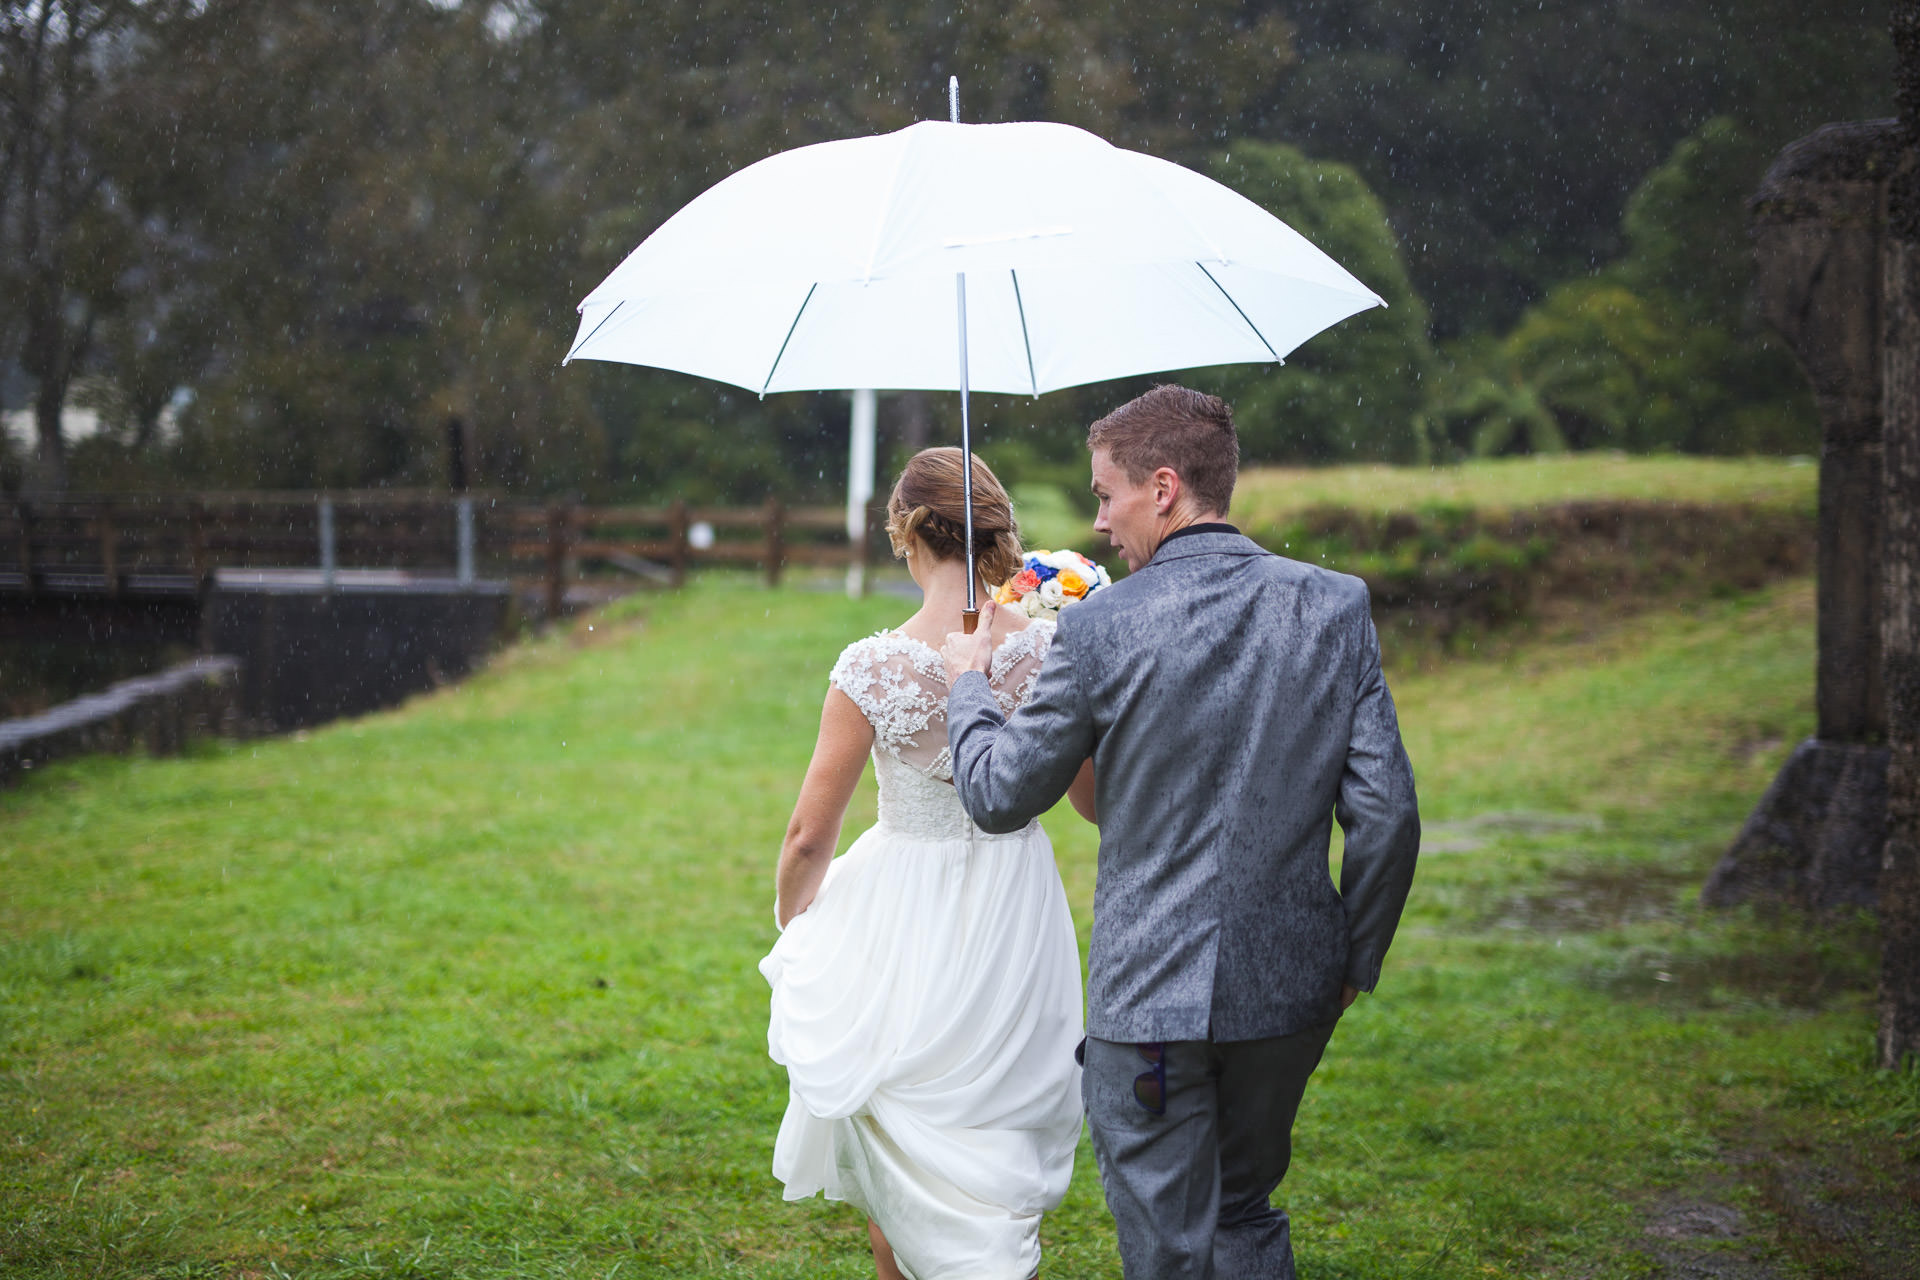 The_Official_Photographers_Sacha_Josh_Wedding_Theboatshed_MG_6724-2